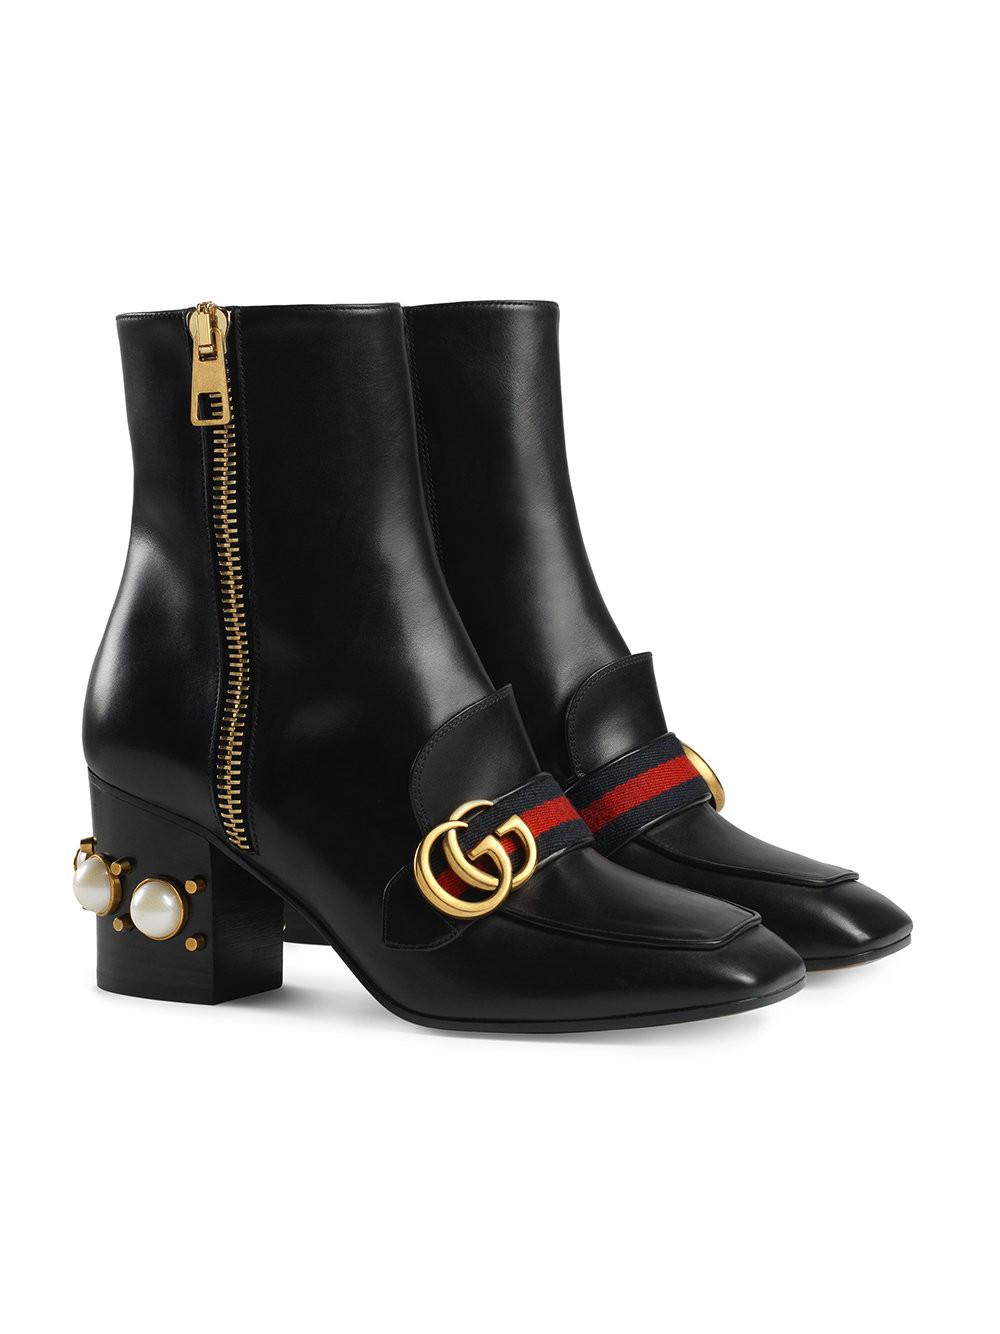 b992c935d5ba Gucci Marmont Embellished Leather Ankle Boots in Black - Save 5% - Lyst